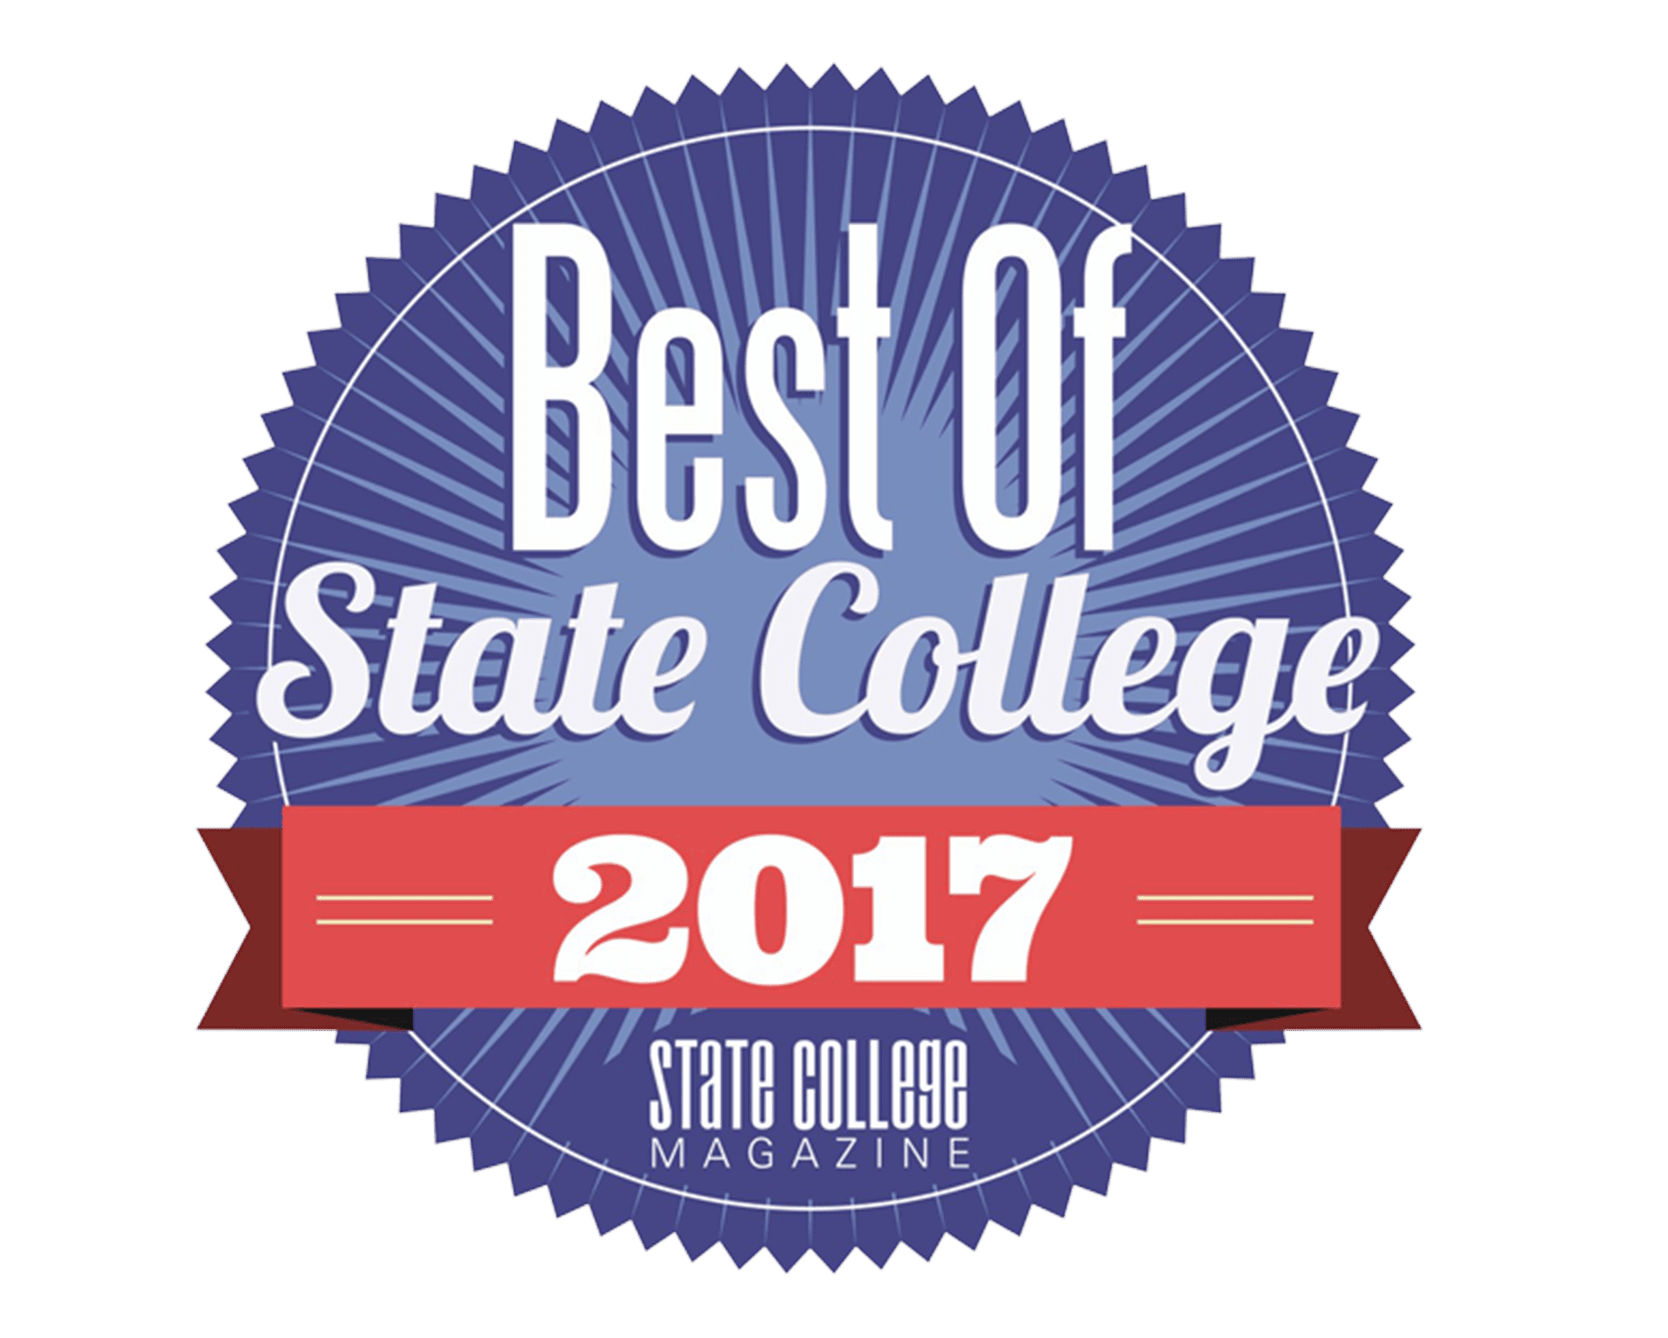 Best of state college 2017